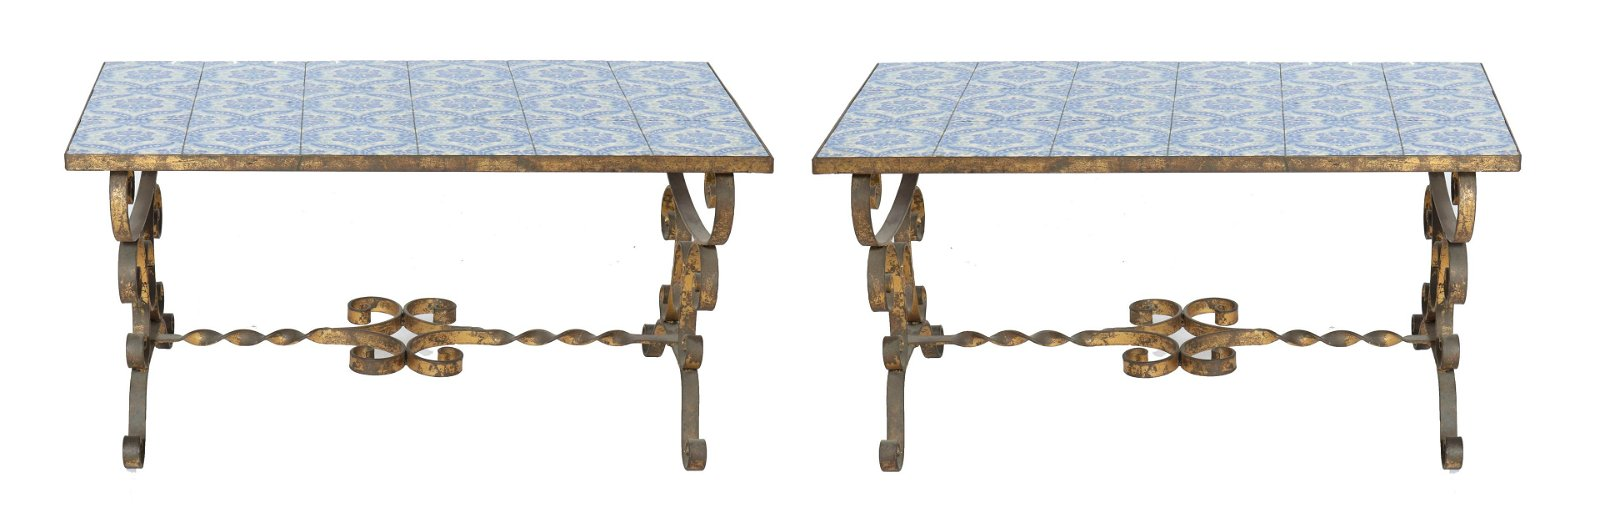 Tile Top & Wrought Iron Low Tables, Pr